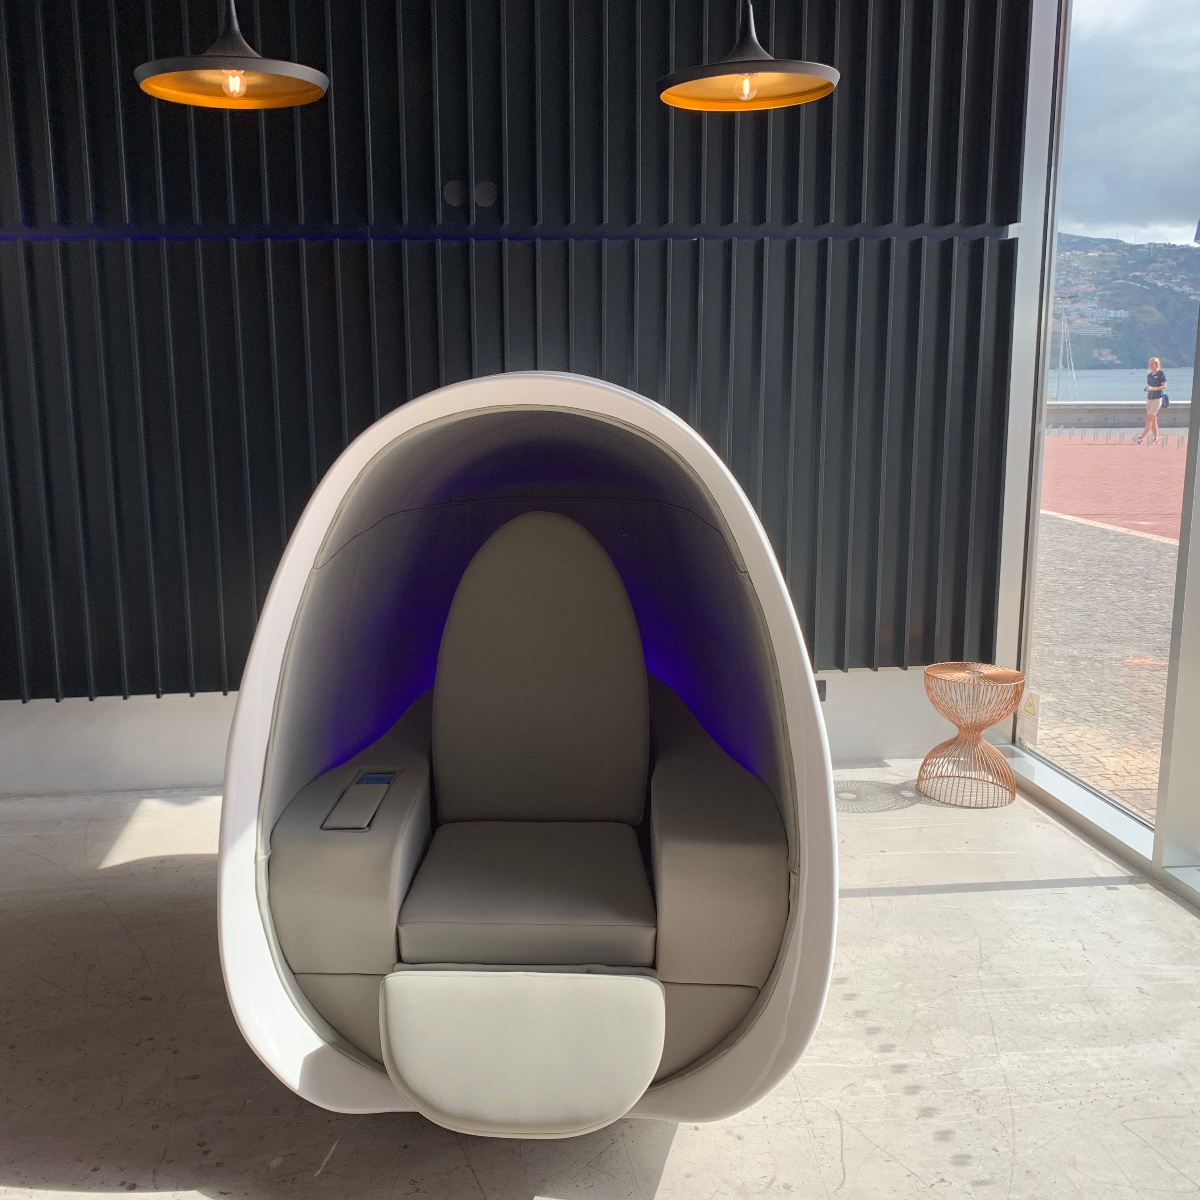 Sense Seat is an innovative workstation for co-working and open-offices spaces, airport lounges and hotels.